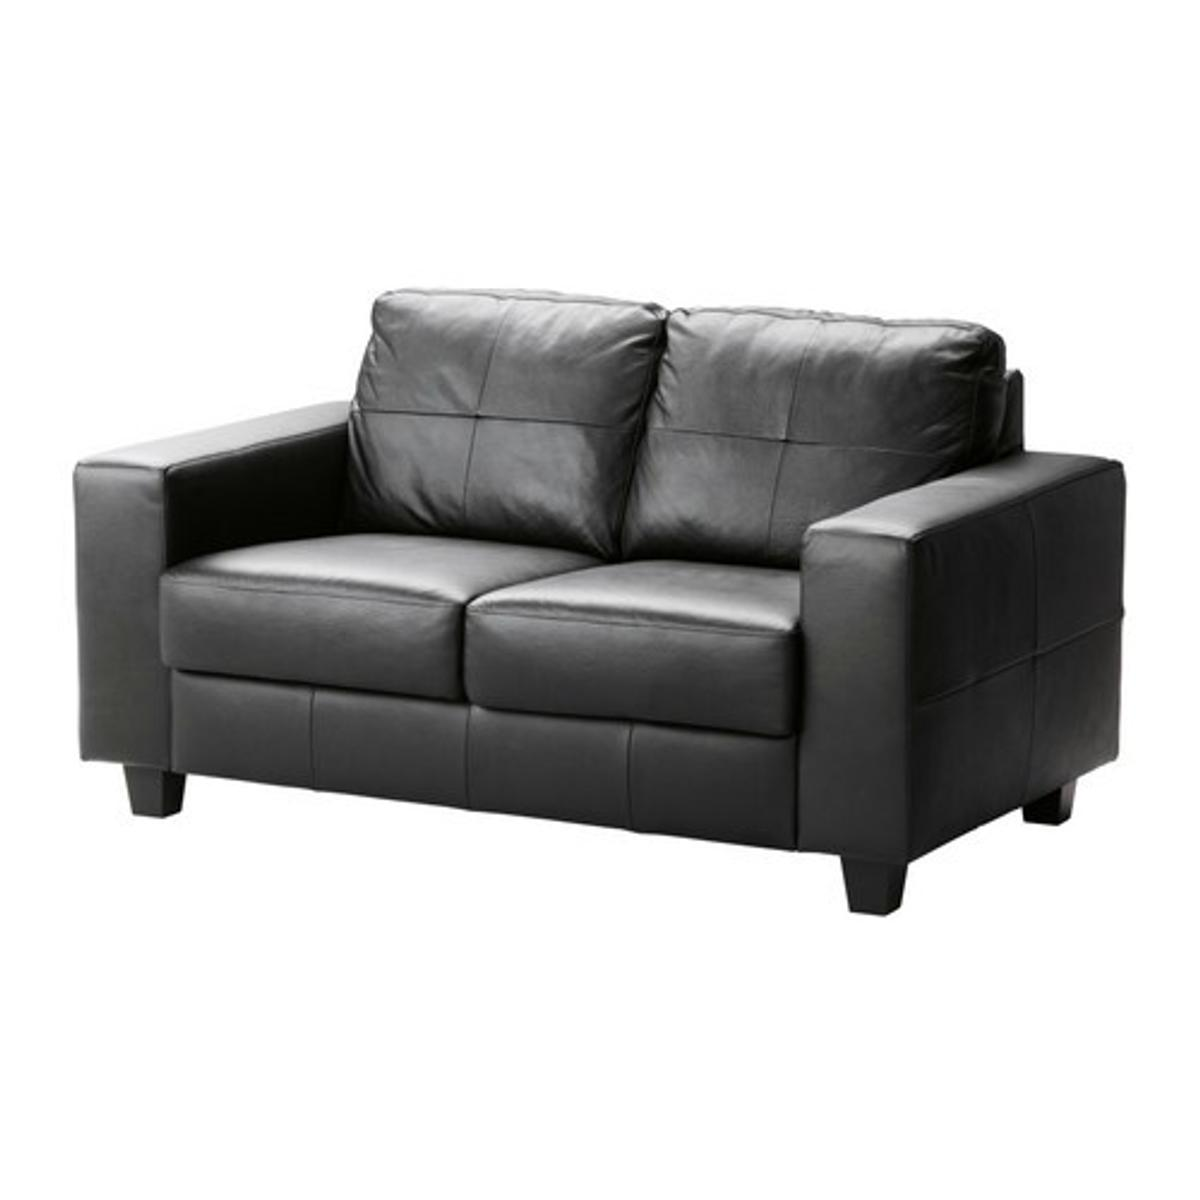 Ikea Skogaby 2er Sofa In 49086 Osnabruck For 200 00 For Sale Shpock